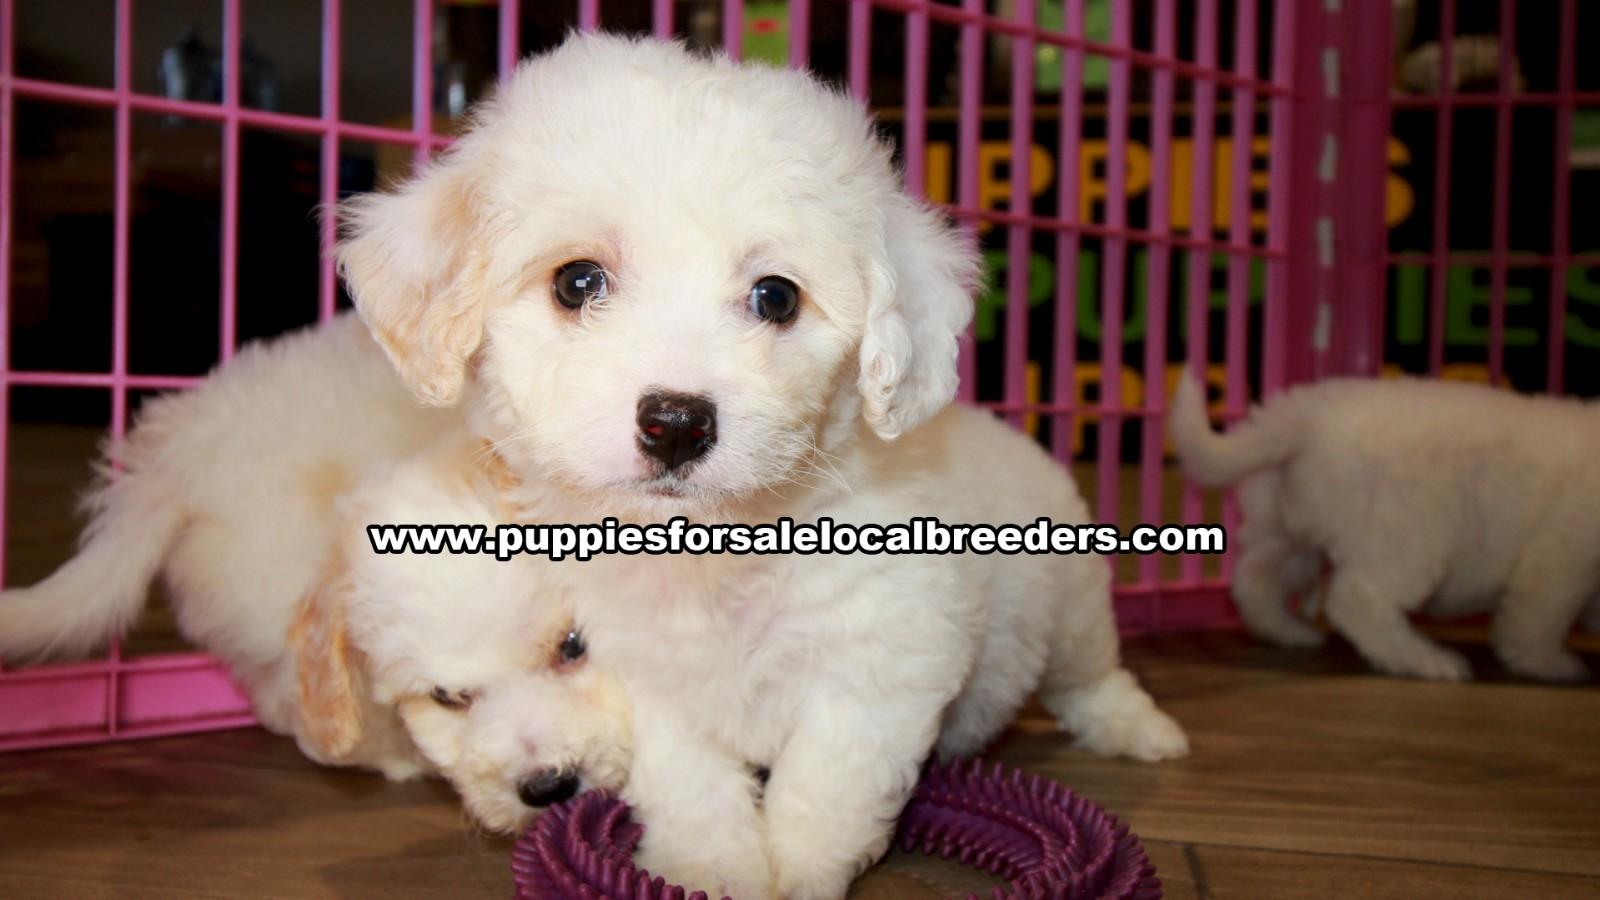 White Cavachon, Puppies For Sale In Georgia, Local Breeders, Near Atlanta, Ga